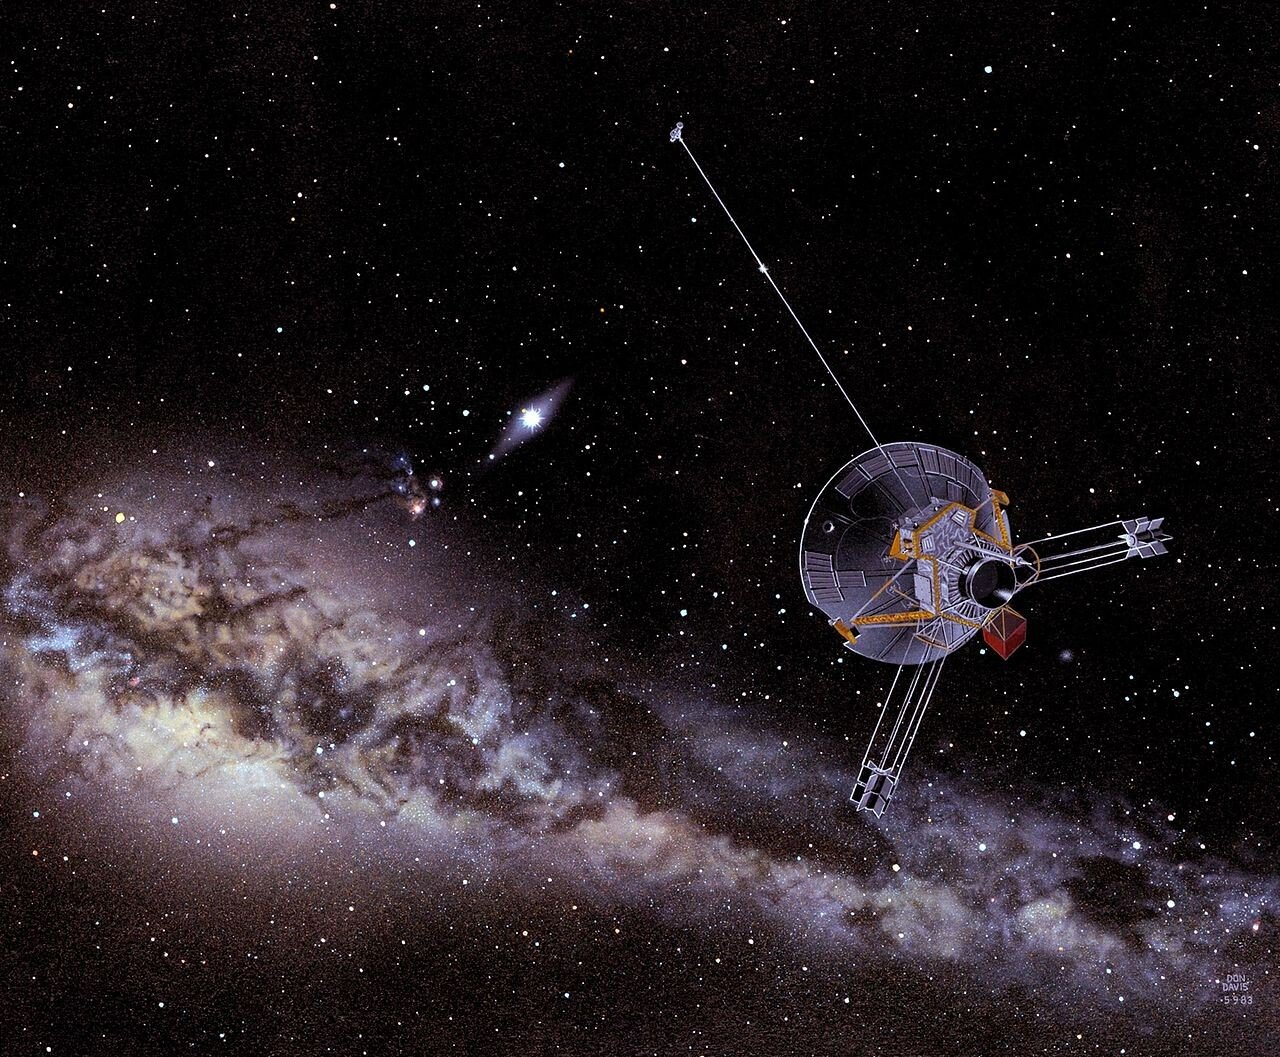 An_artist's_impression_of_a_Pioneer_spacecraft_on_its_way_to_interstellar_space (2).jpg 인류 우주탐사의 역사(1974~현재)